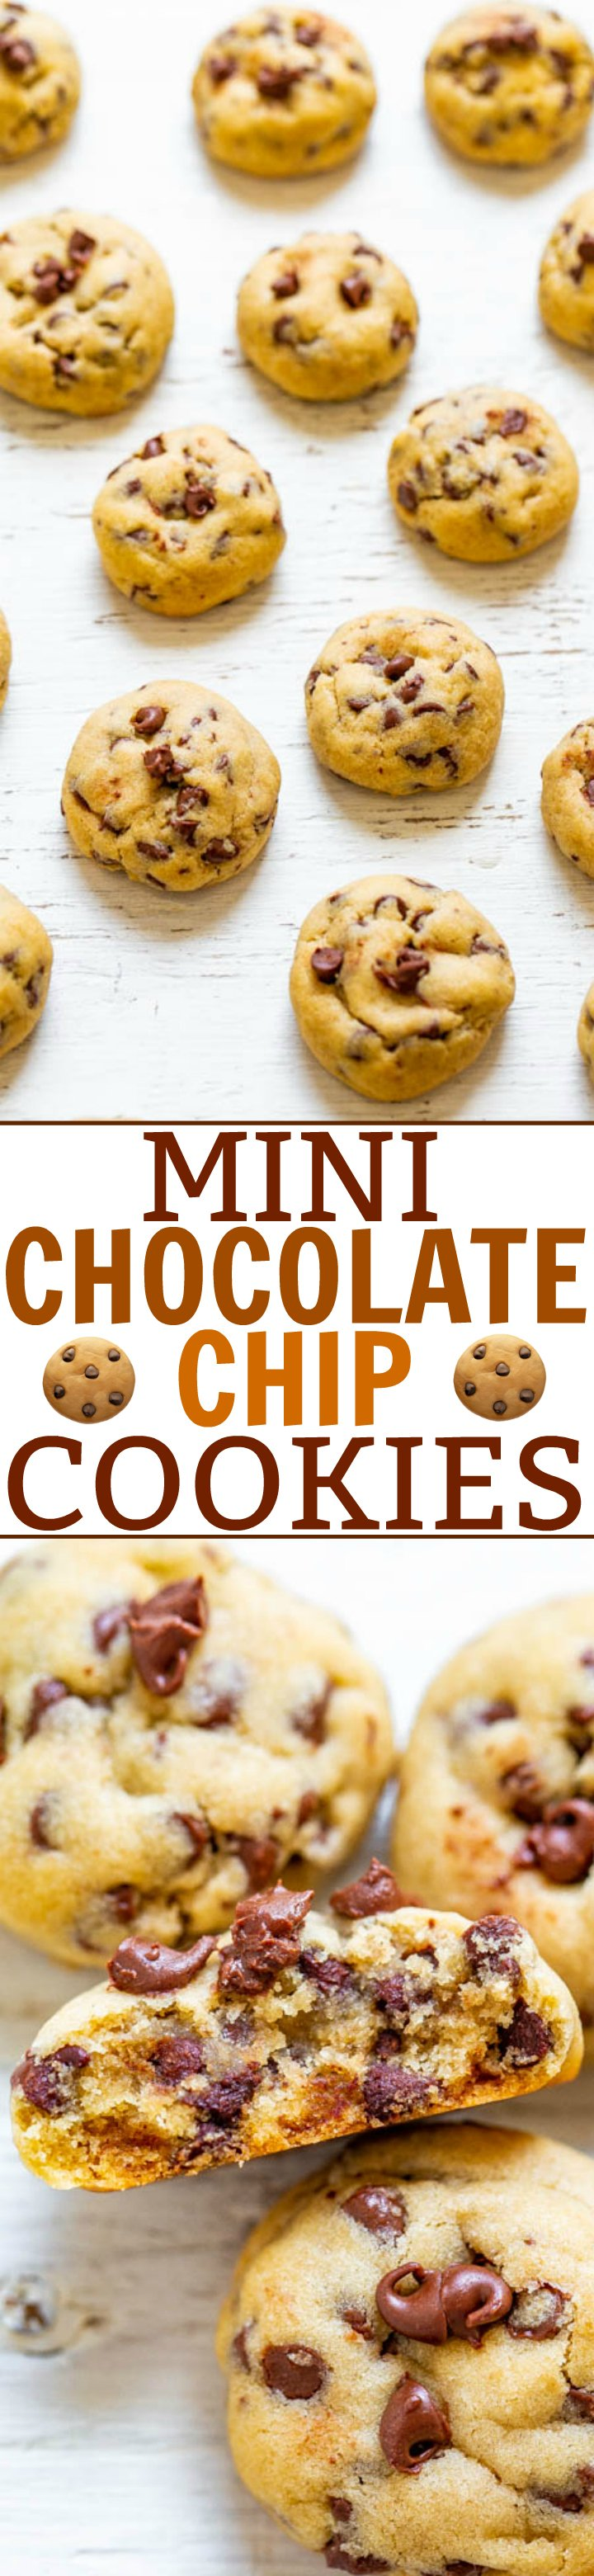 Mini Chocolate Chip Cookies – Soft, chewy, adorable little MINI cookies that are a hit with everyone!! Fast and easy! Bet you can't eat just one!!